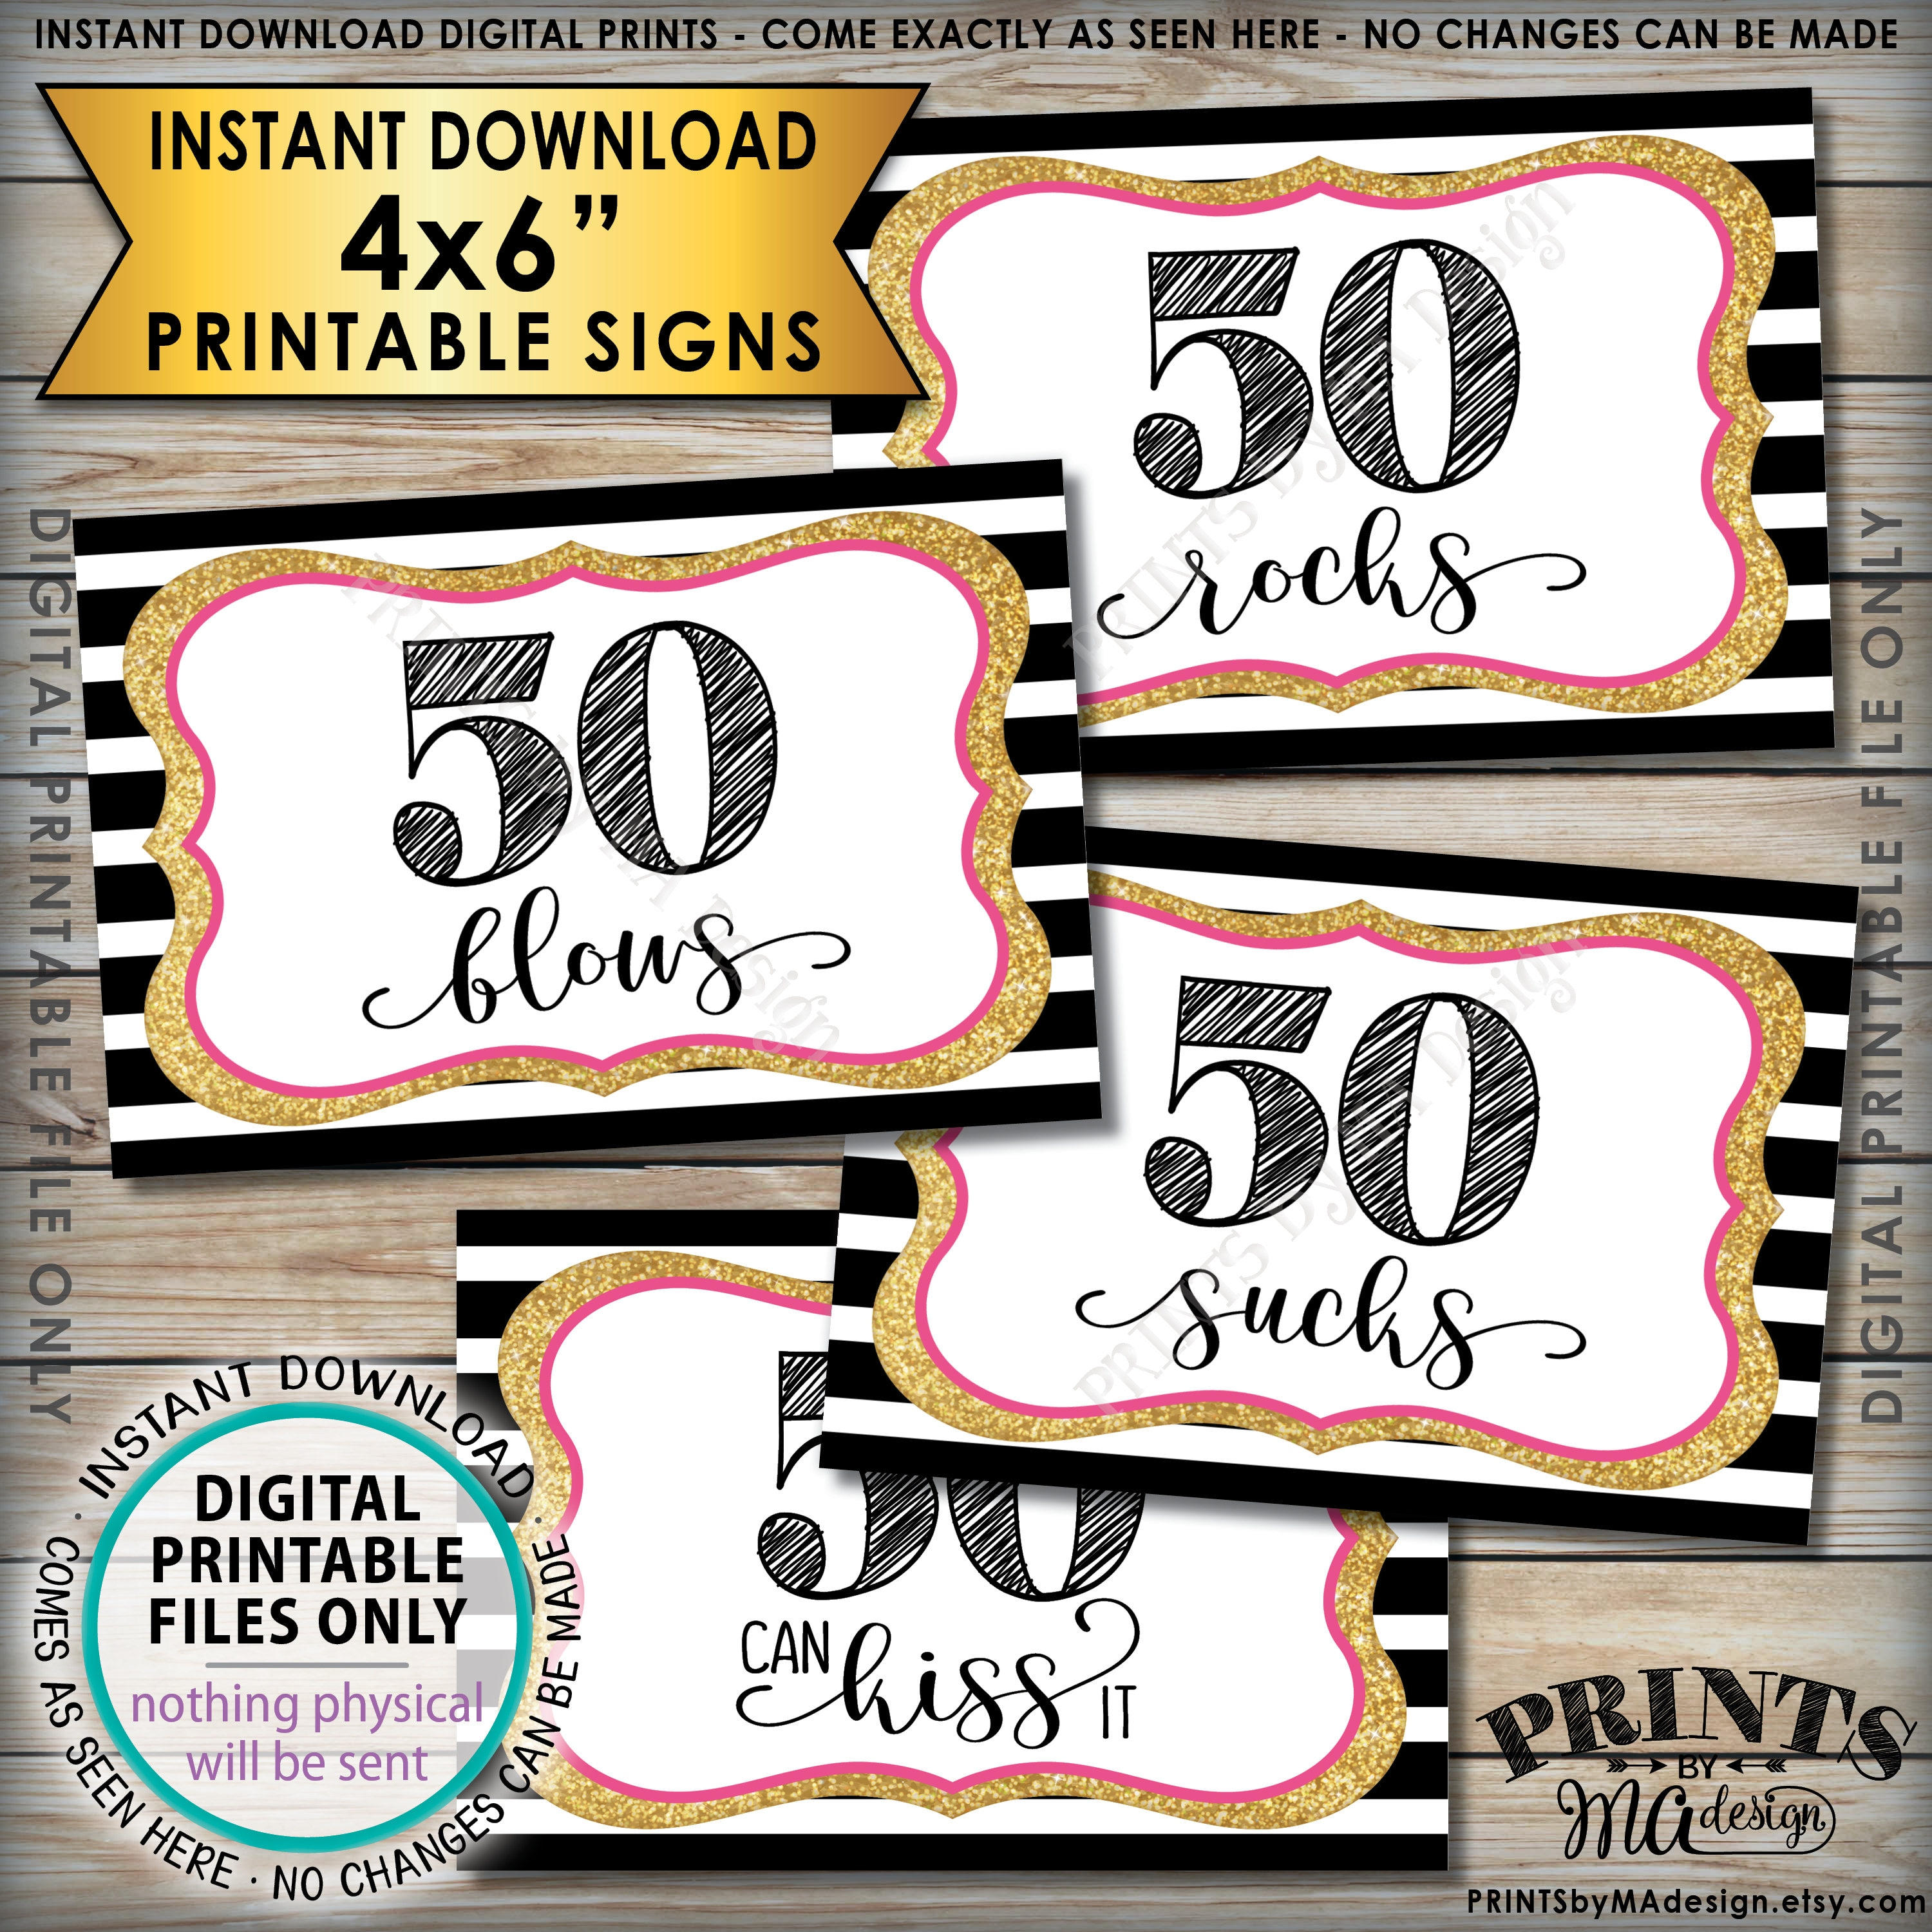 photograph relating to Free Printable 50th Birthday Signs identify 50th Birthday Sweet Symptoms, 50 Sucks 50 Rocks 50 Blows 50